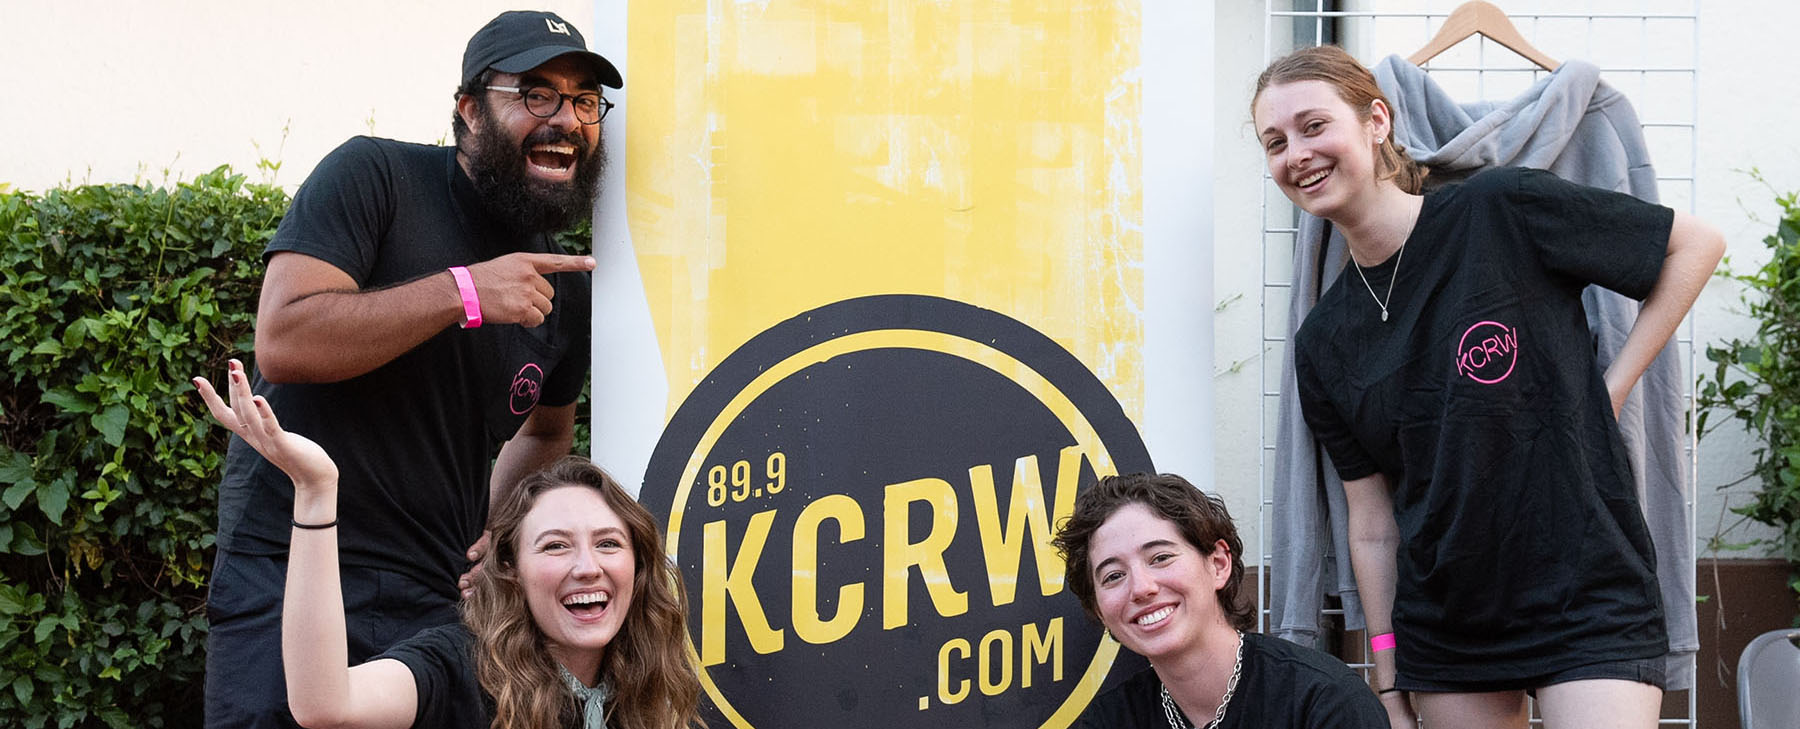 Volunteer at KCRW